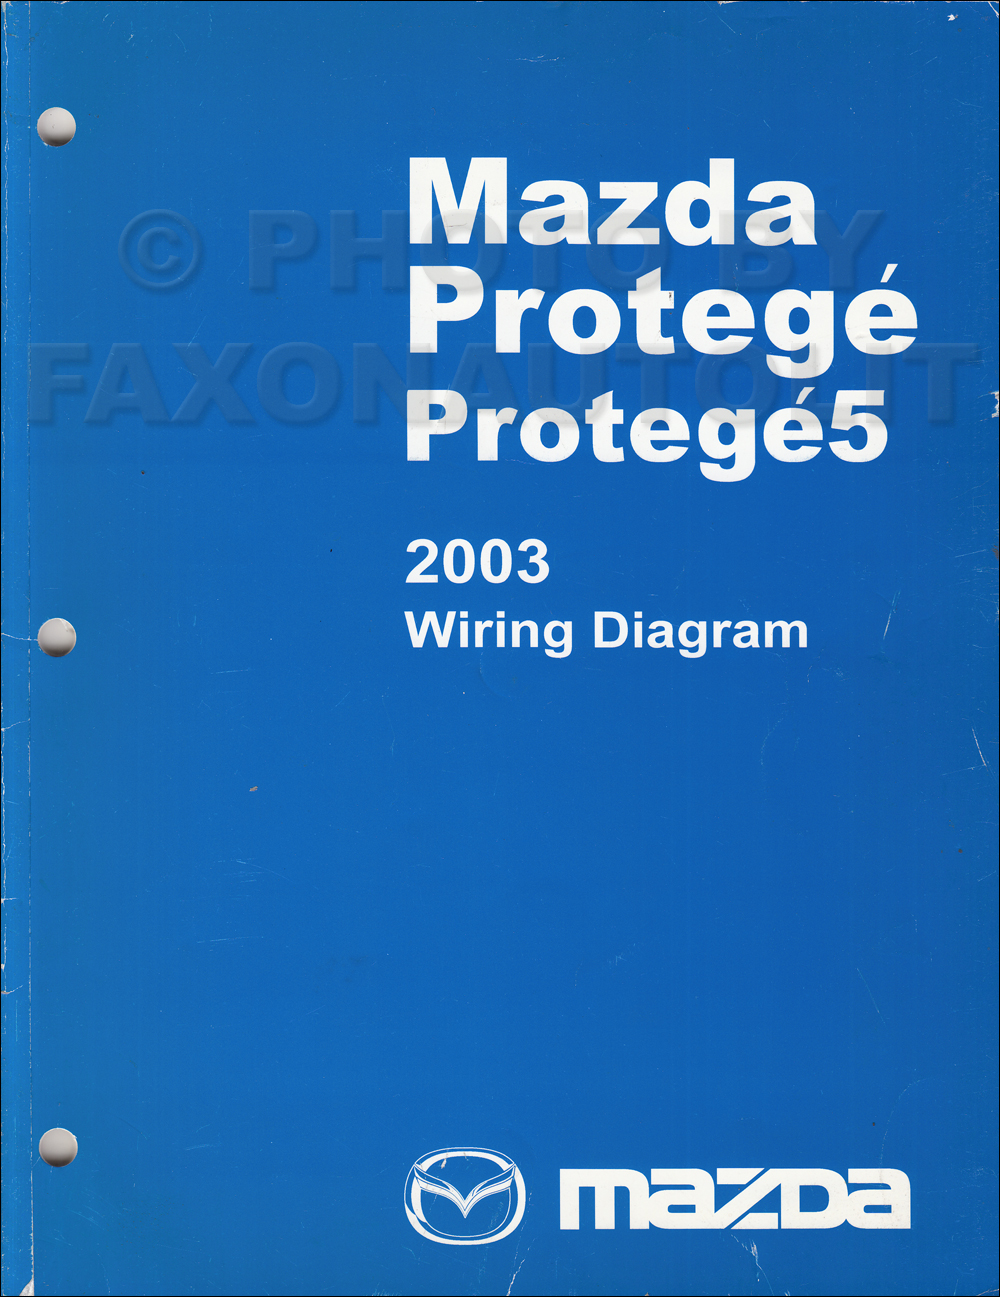 hight resolution of mazda protege5 wiring diagram wiring diagram fascinating mix mazda protege5 wiring diagram